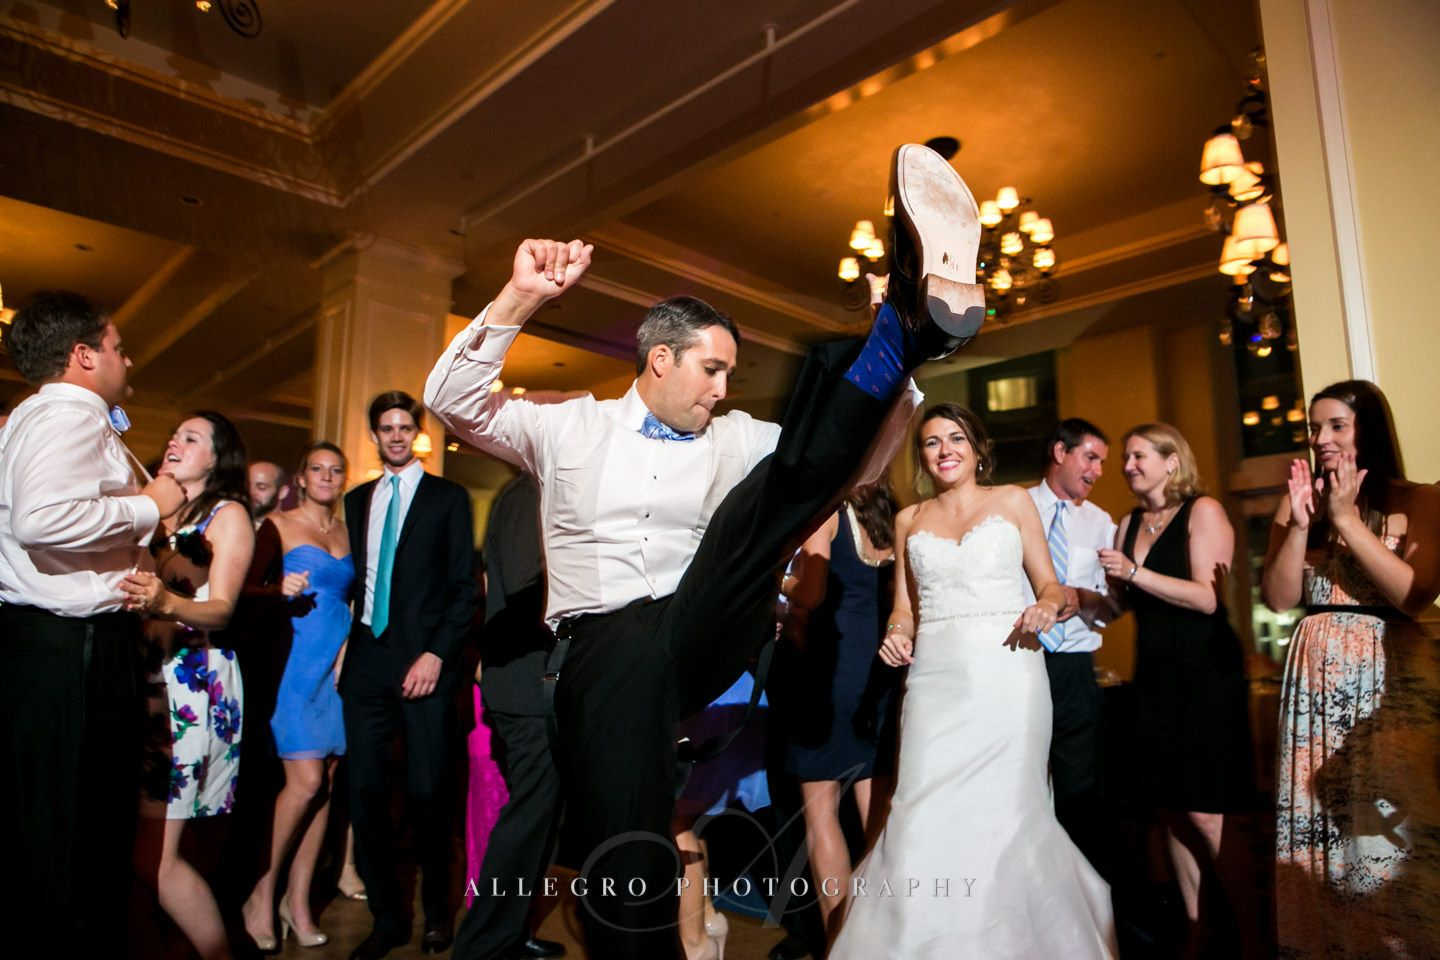 high kick  photo by Allegro Photography